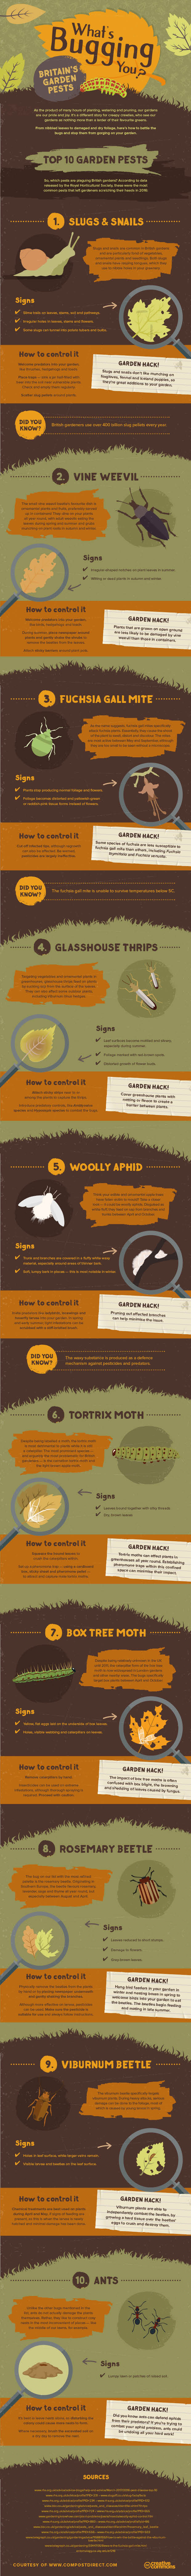 garden peststs infographic